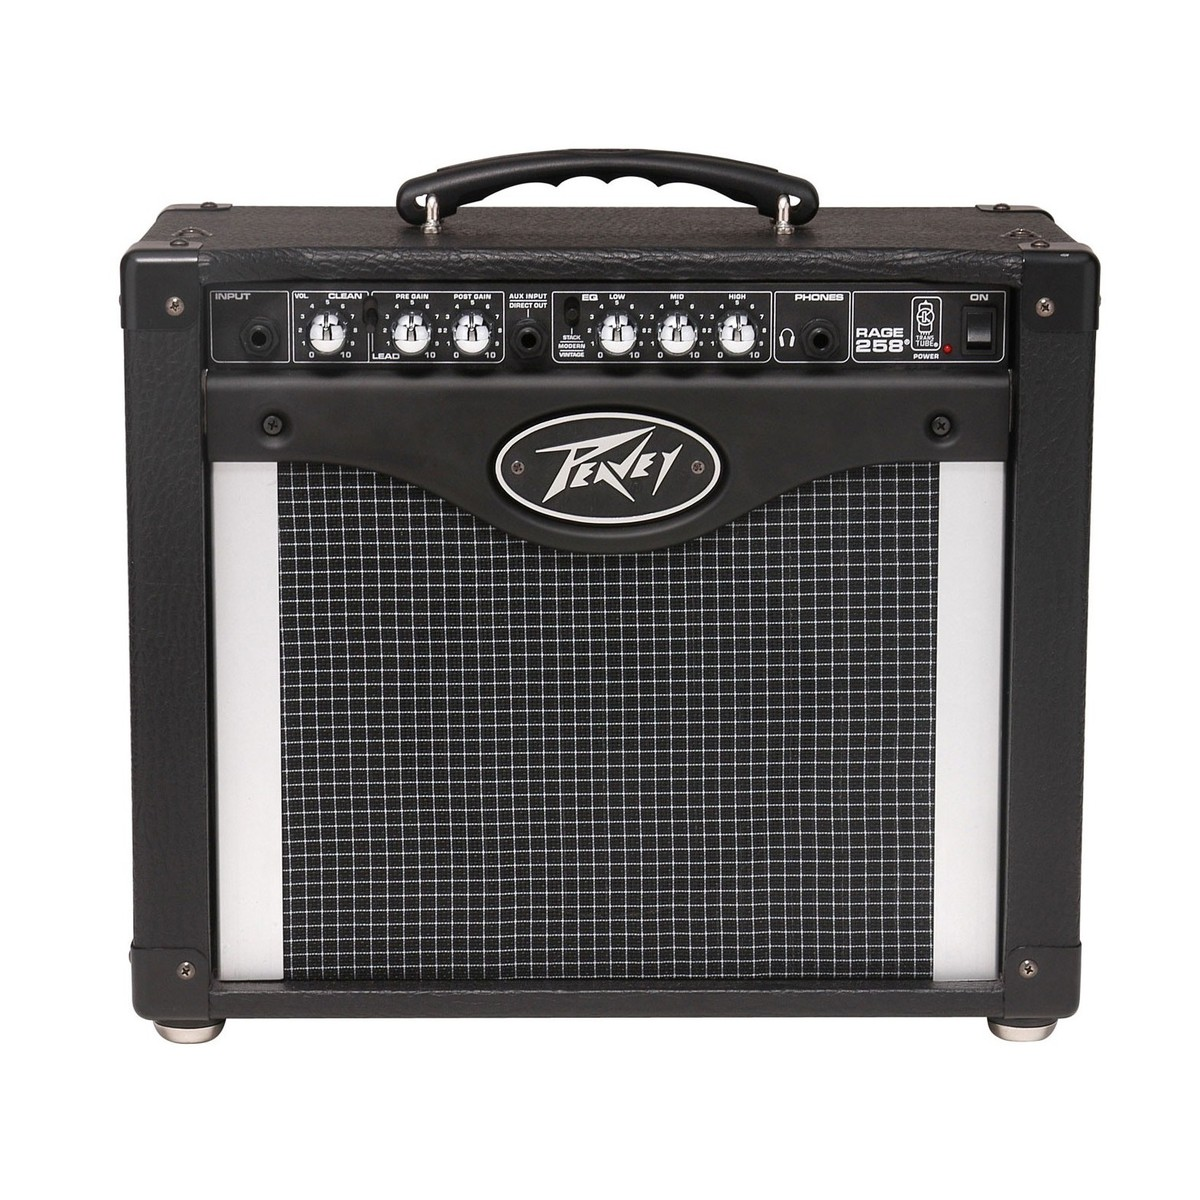 Cheap Peavey Rage 258 Guitar Amp